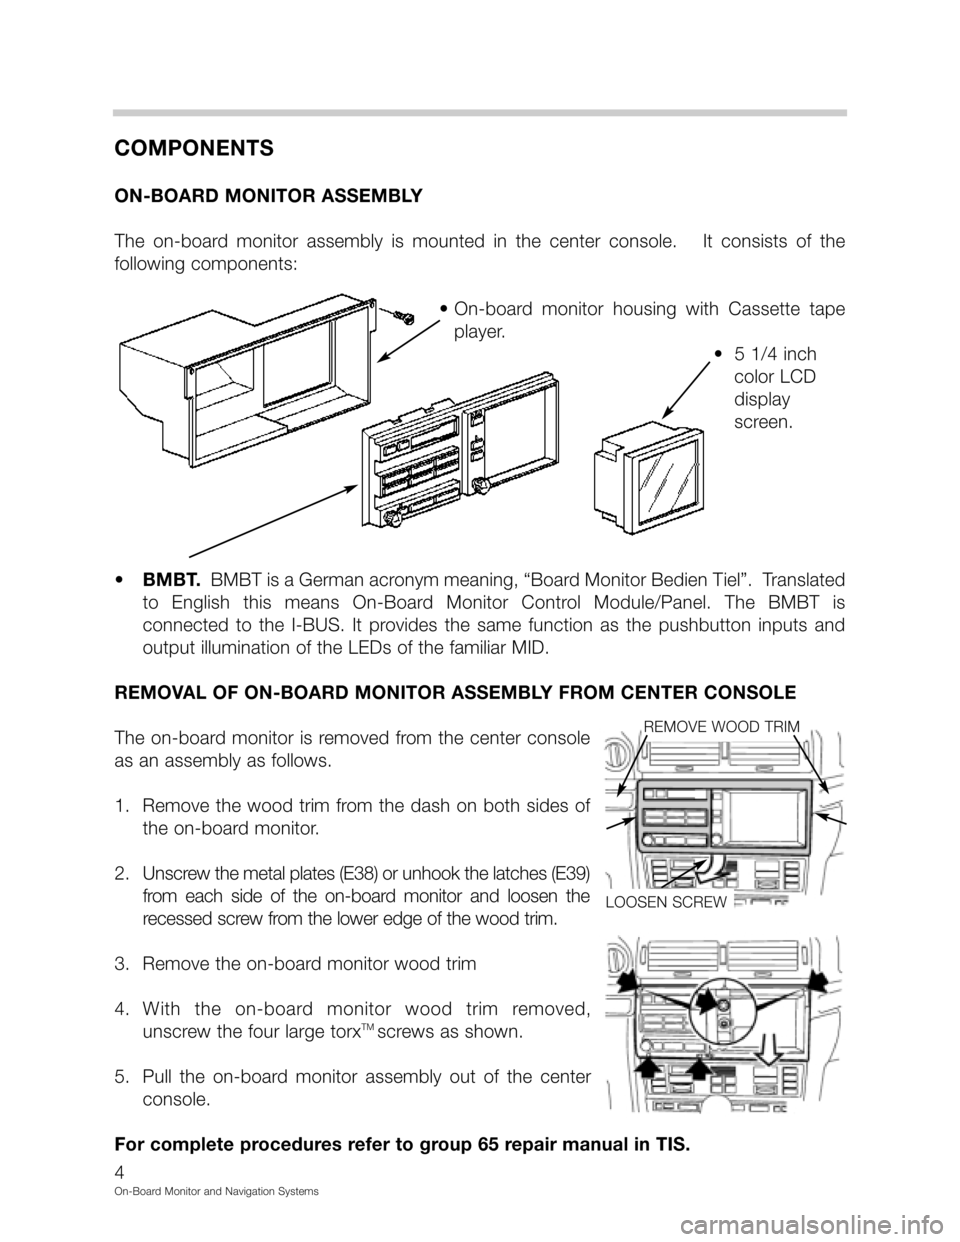 BMW 5 SERIES 1998 E39 On Board Monitor System Workshop Manual, Page 4